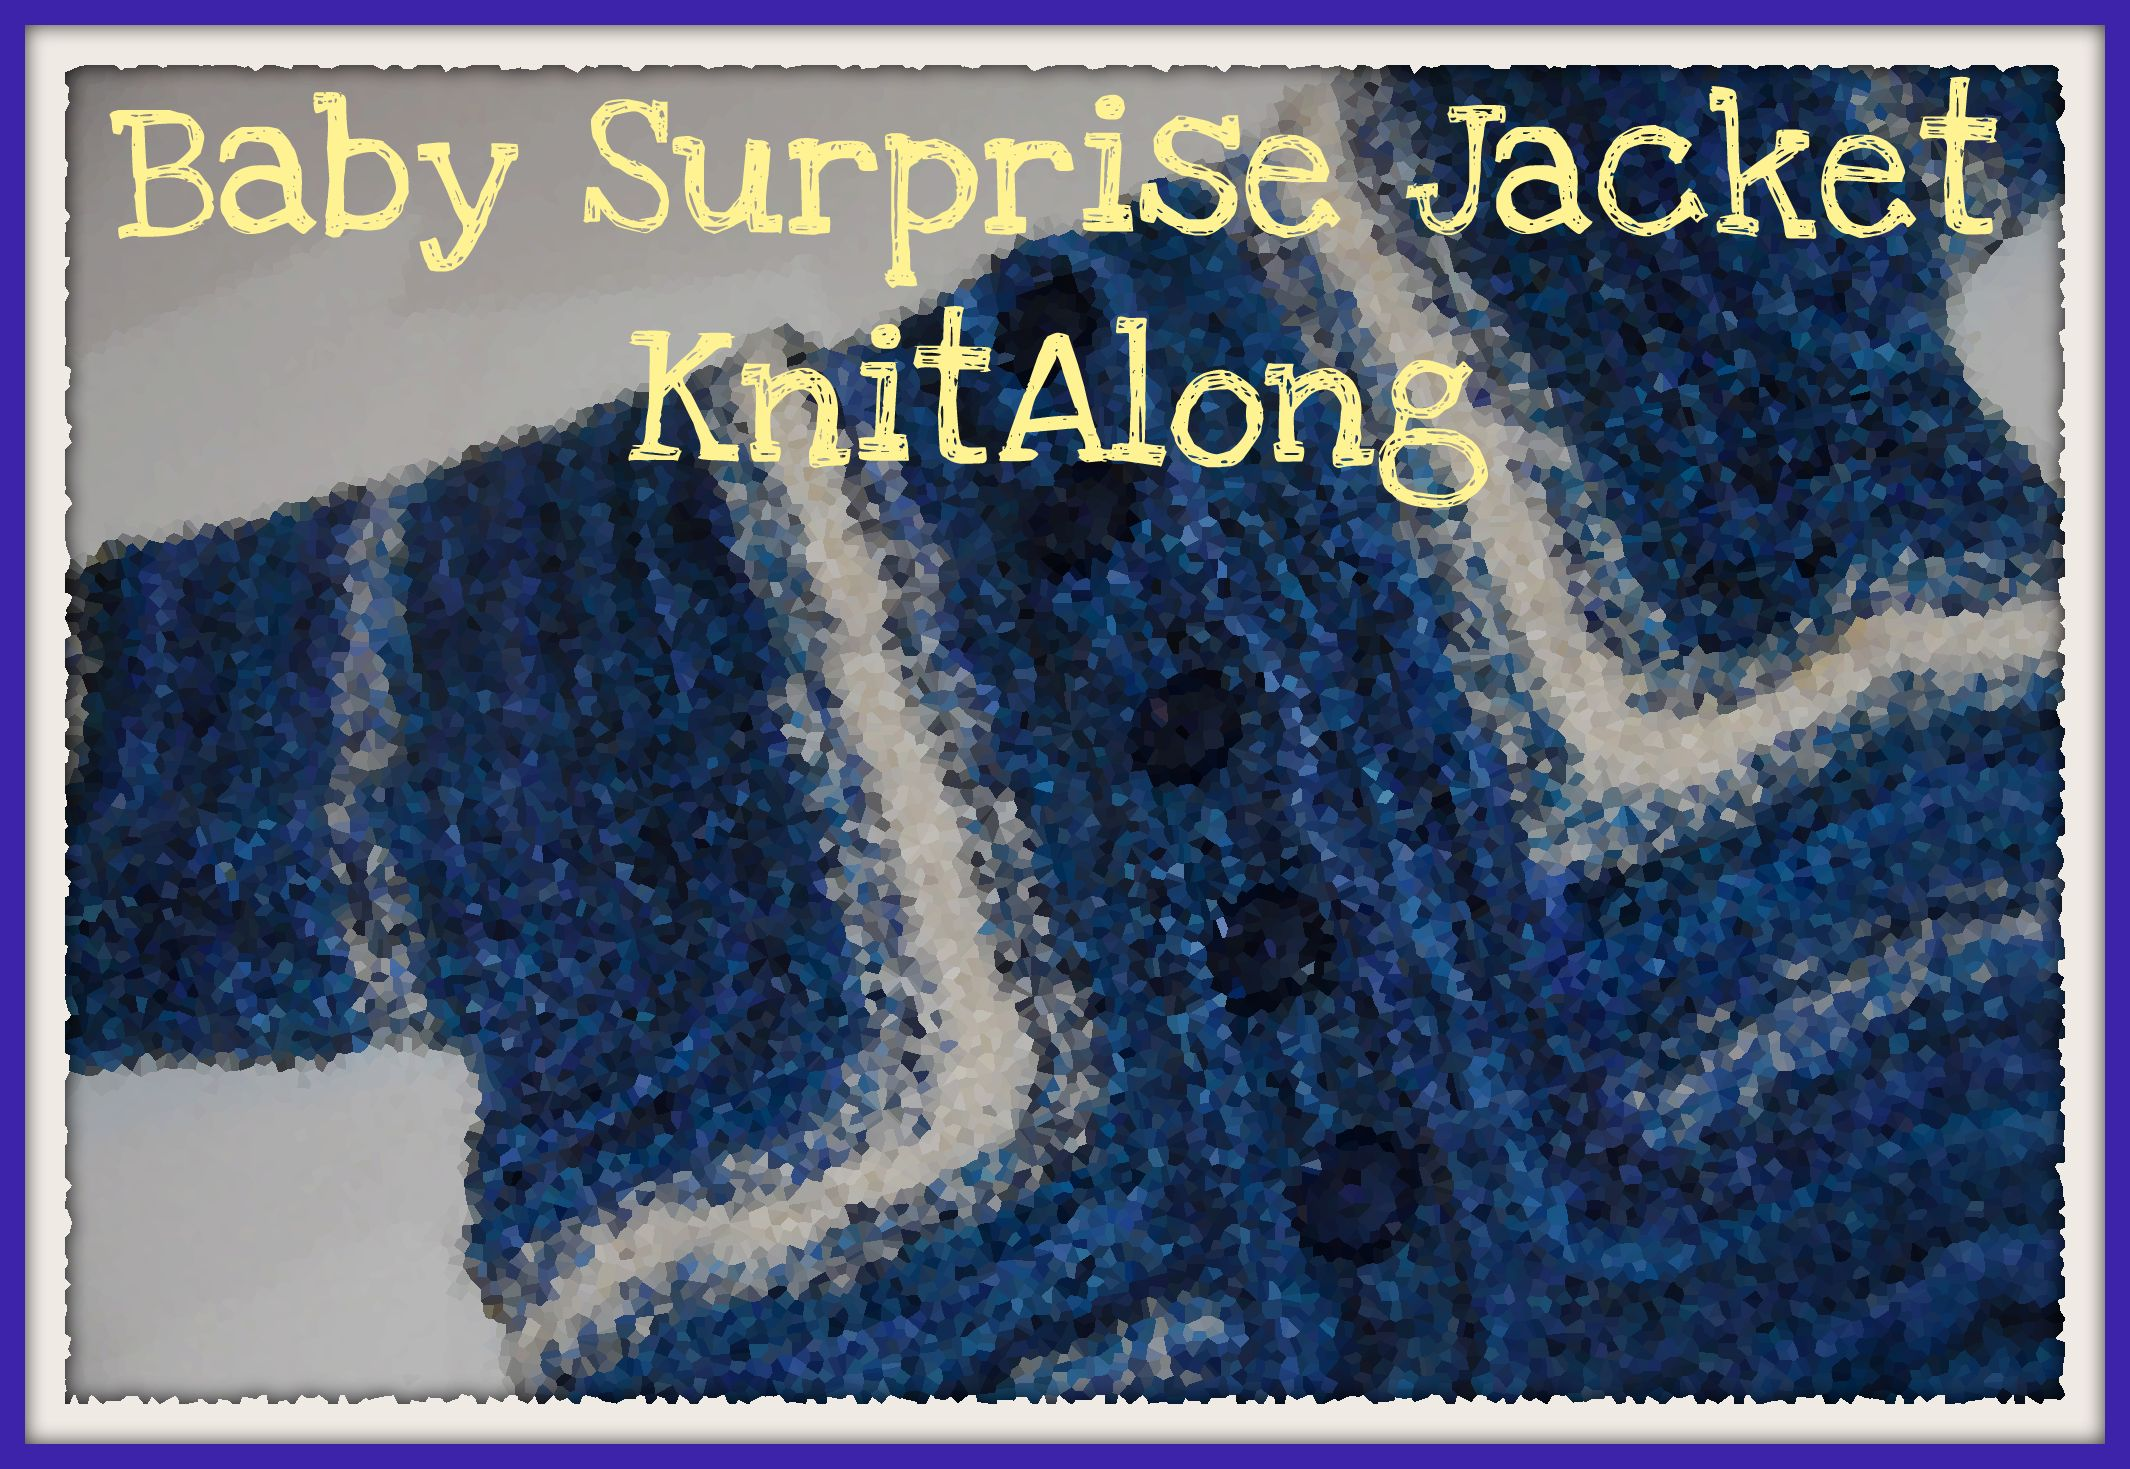 Baby Surprise Jacket KnitAlong